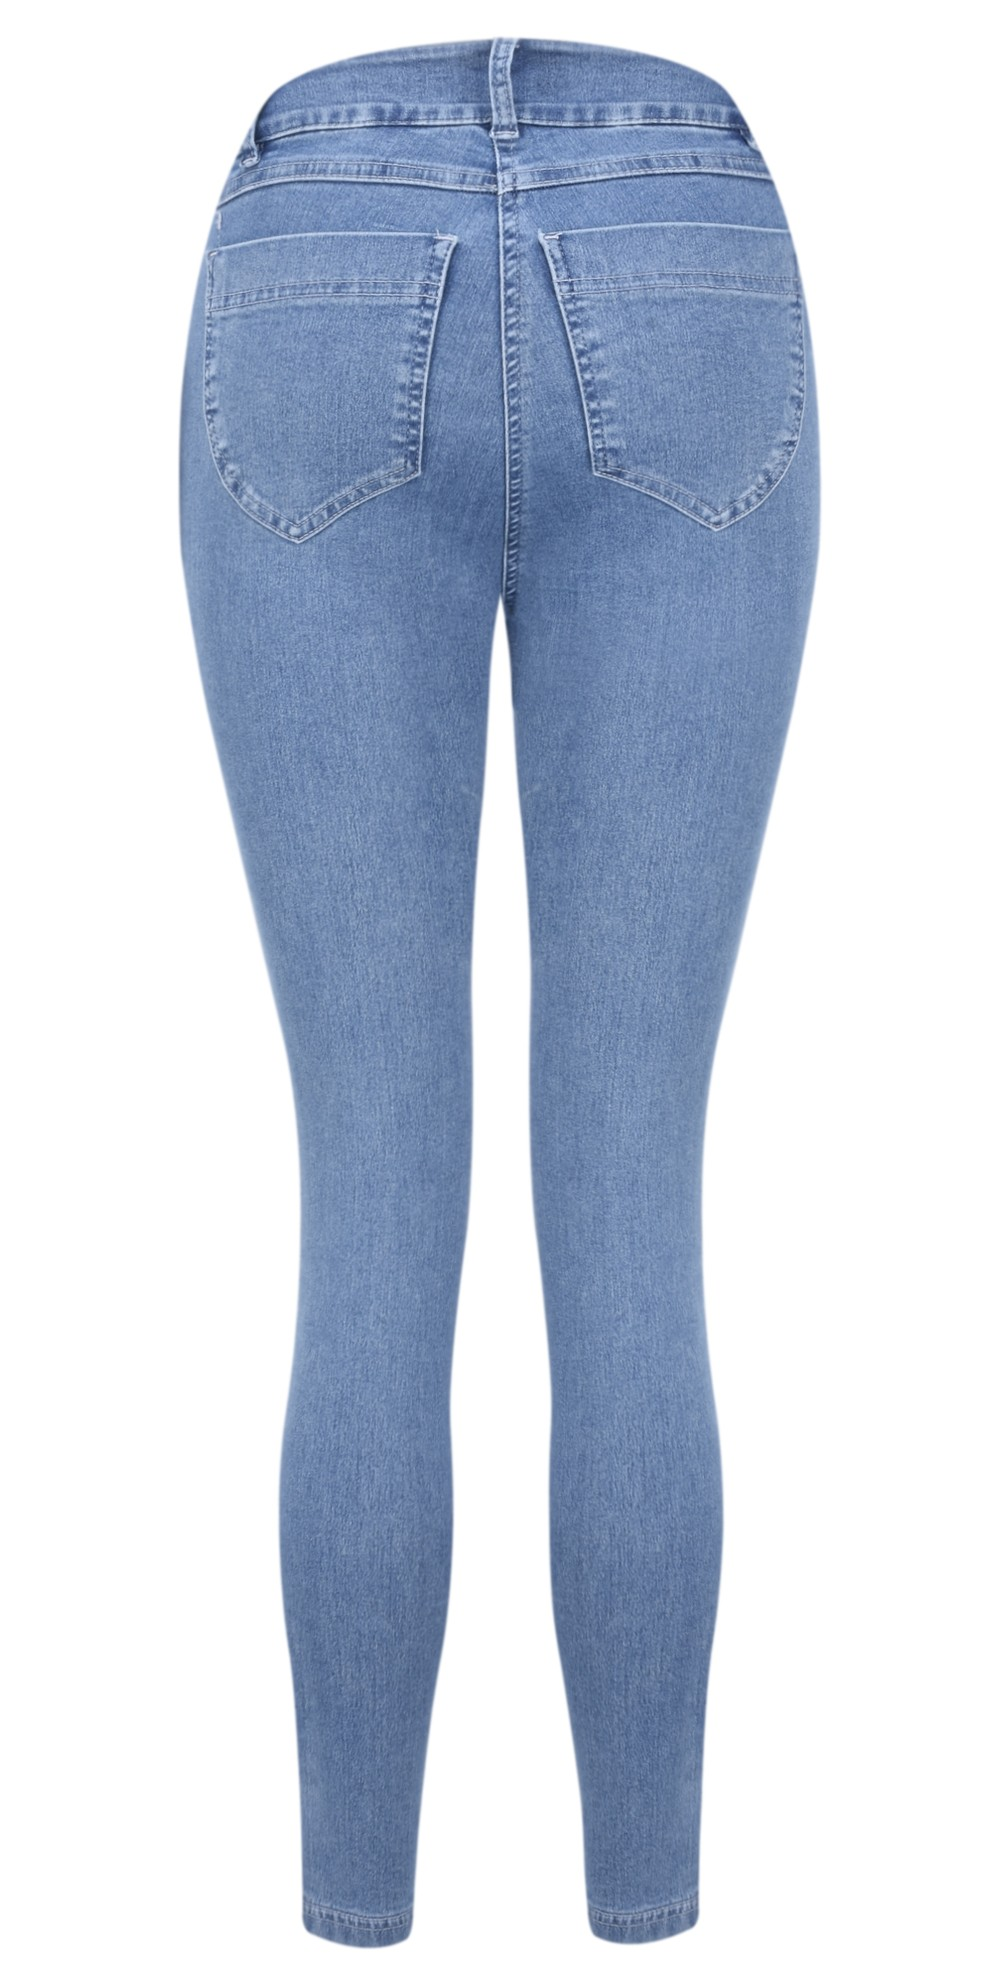 Star 09 Power Stretch Cropped Skinny jean main image